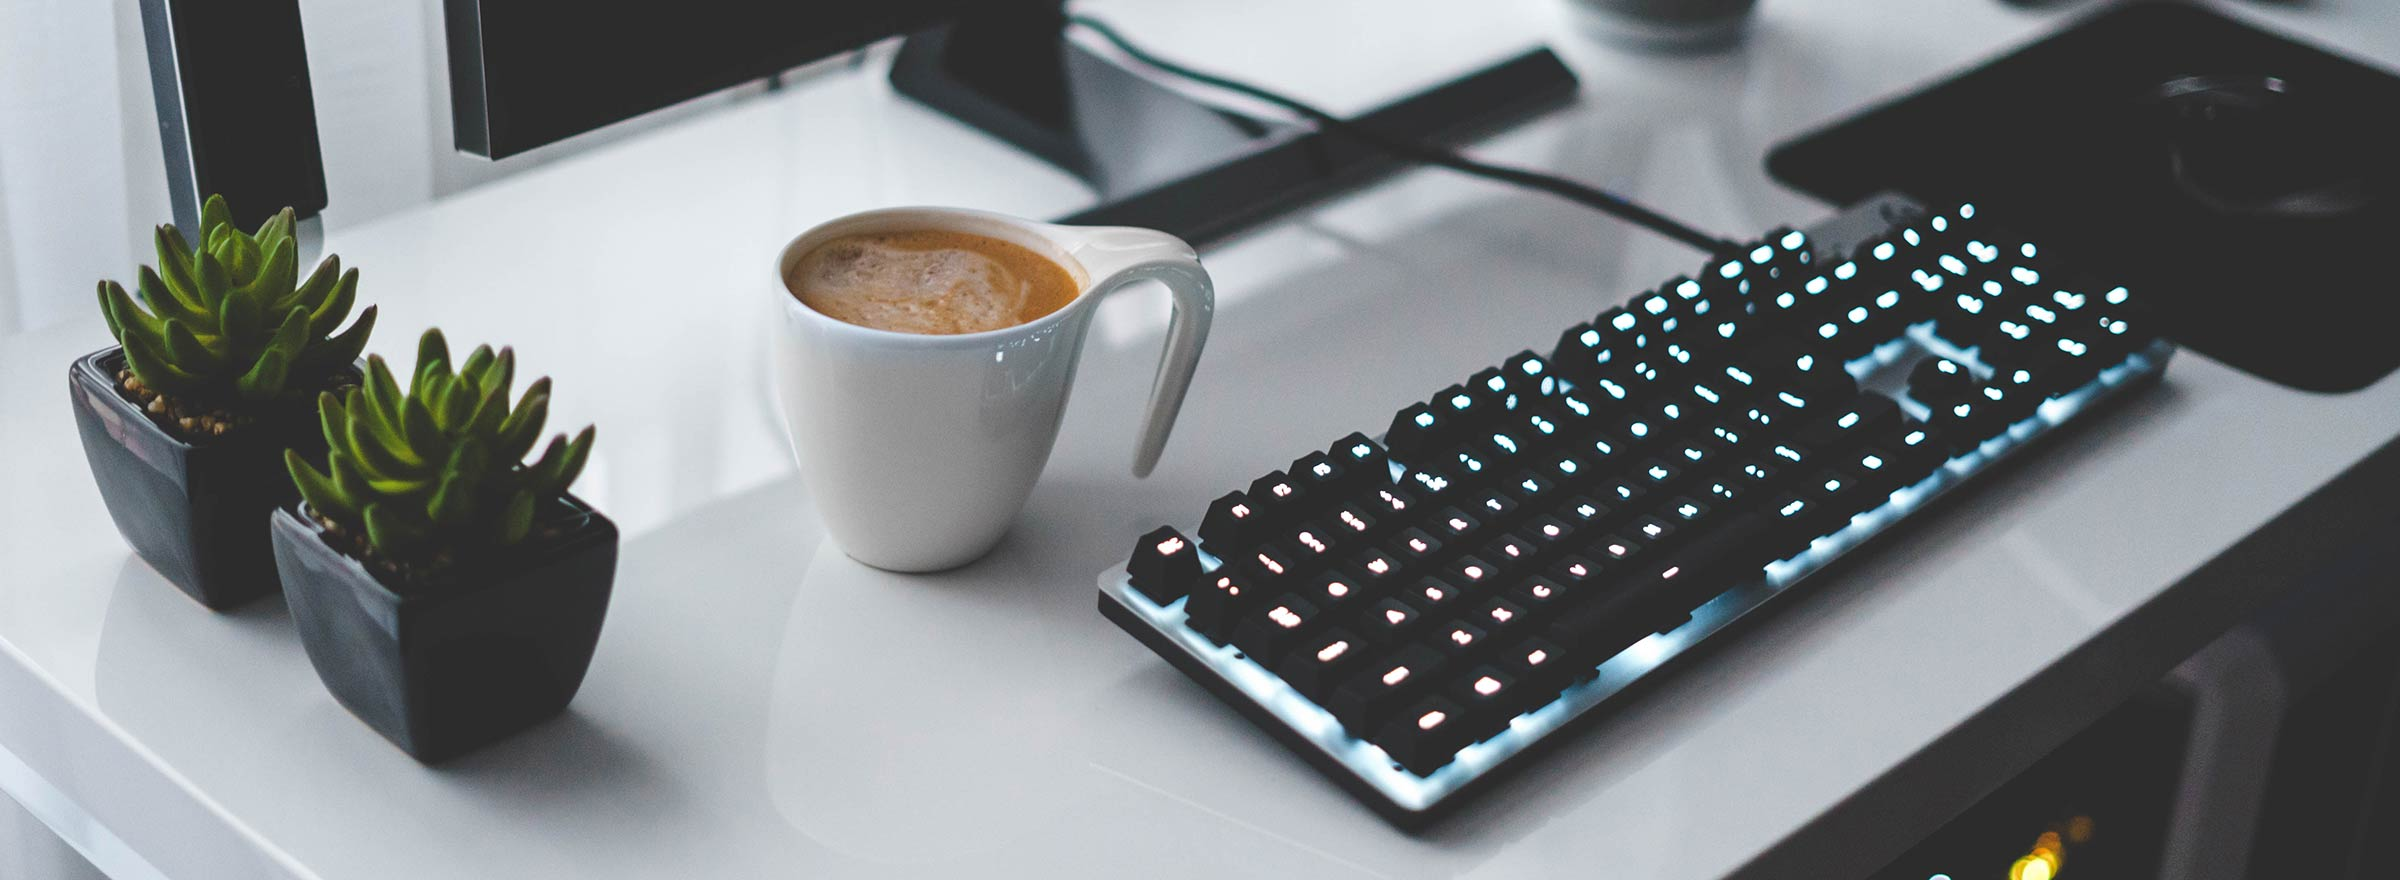 a computer keyboard and a cup of coffee in a nonprofit office